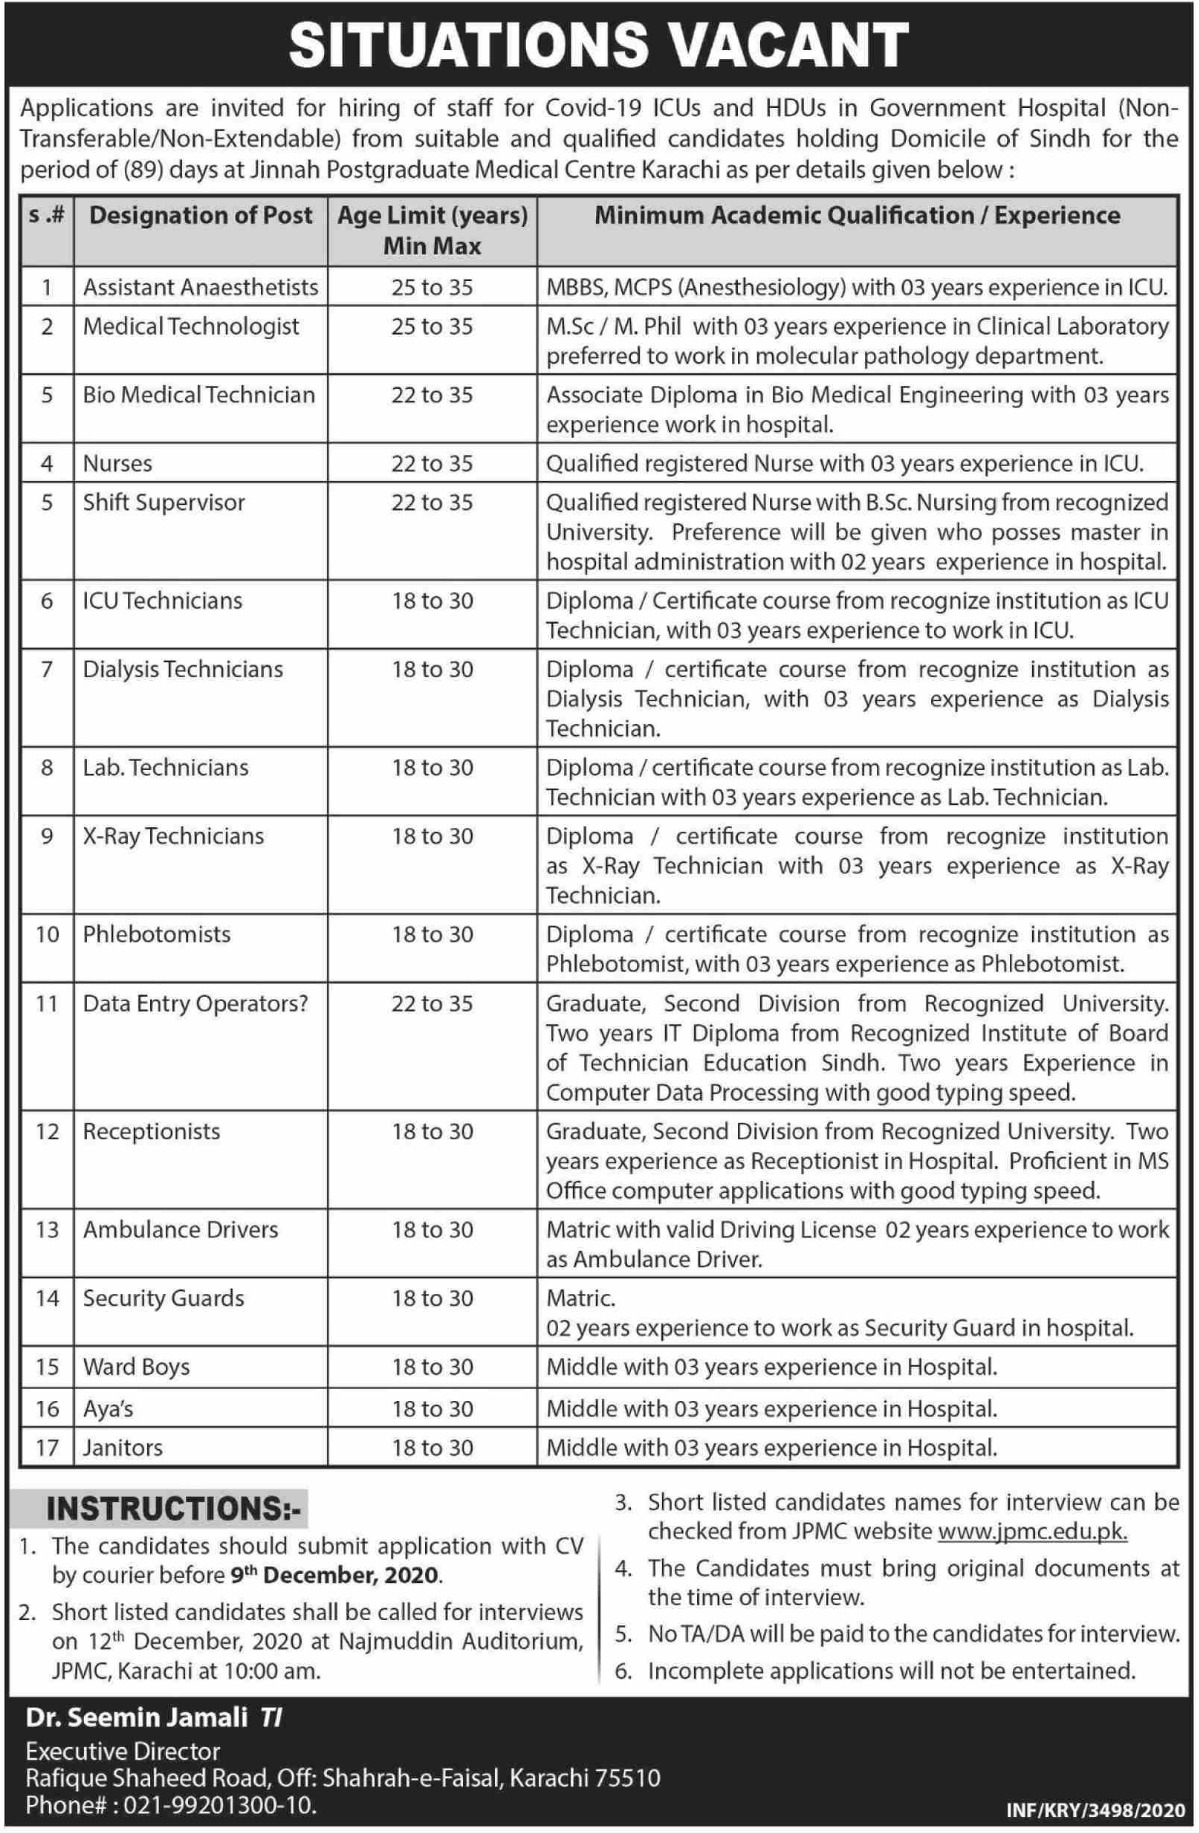 Jinnah Postgraduate Medical Centre JPMC Karachi Jobs December 2020